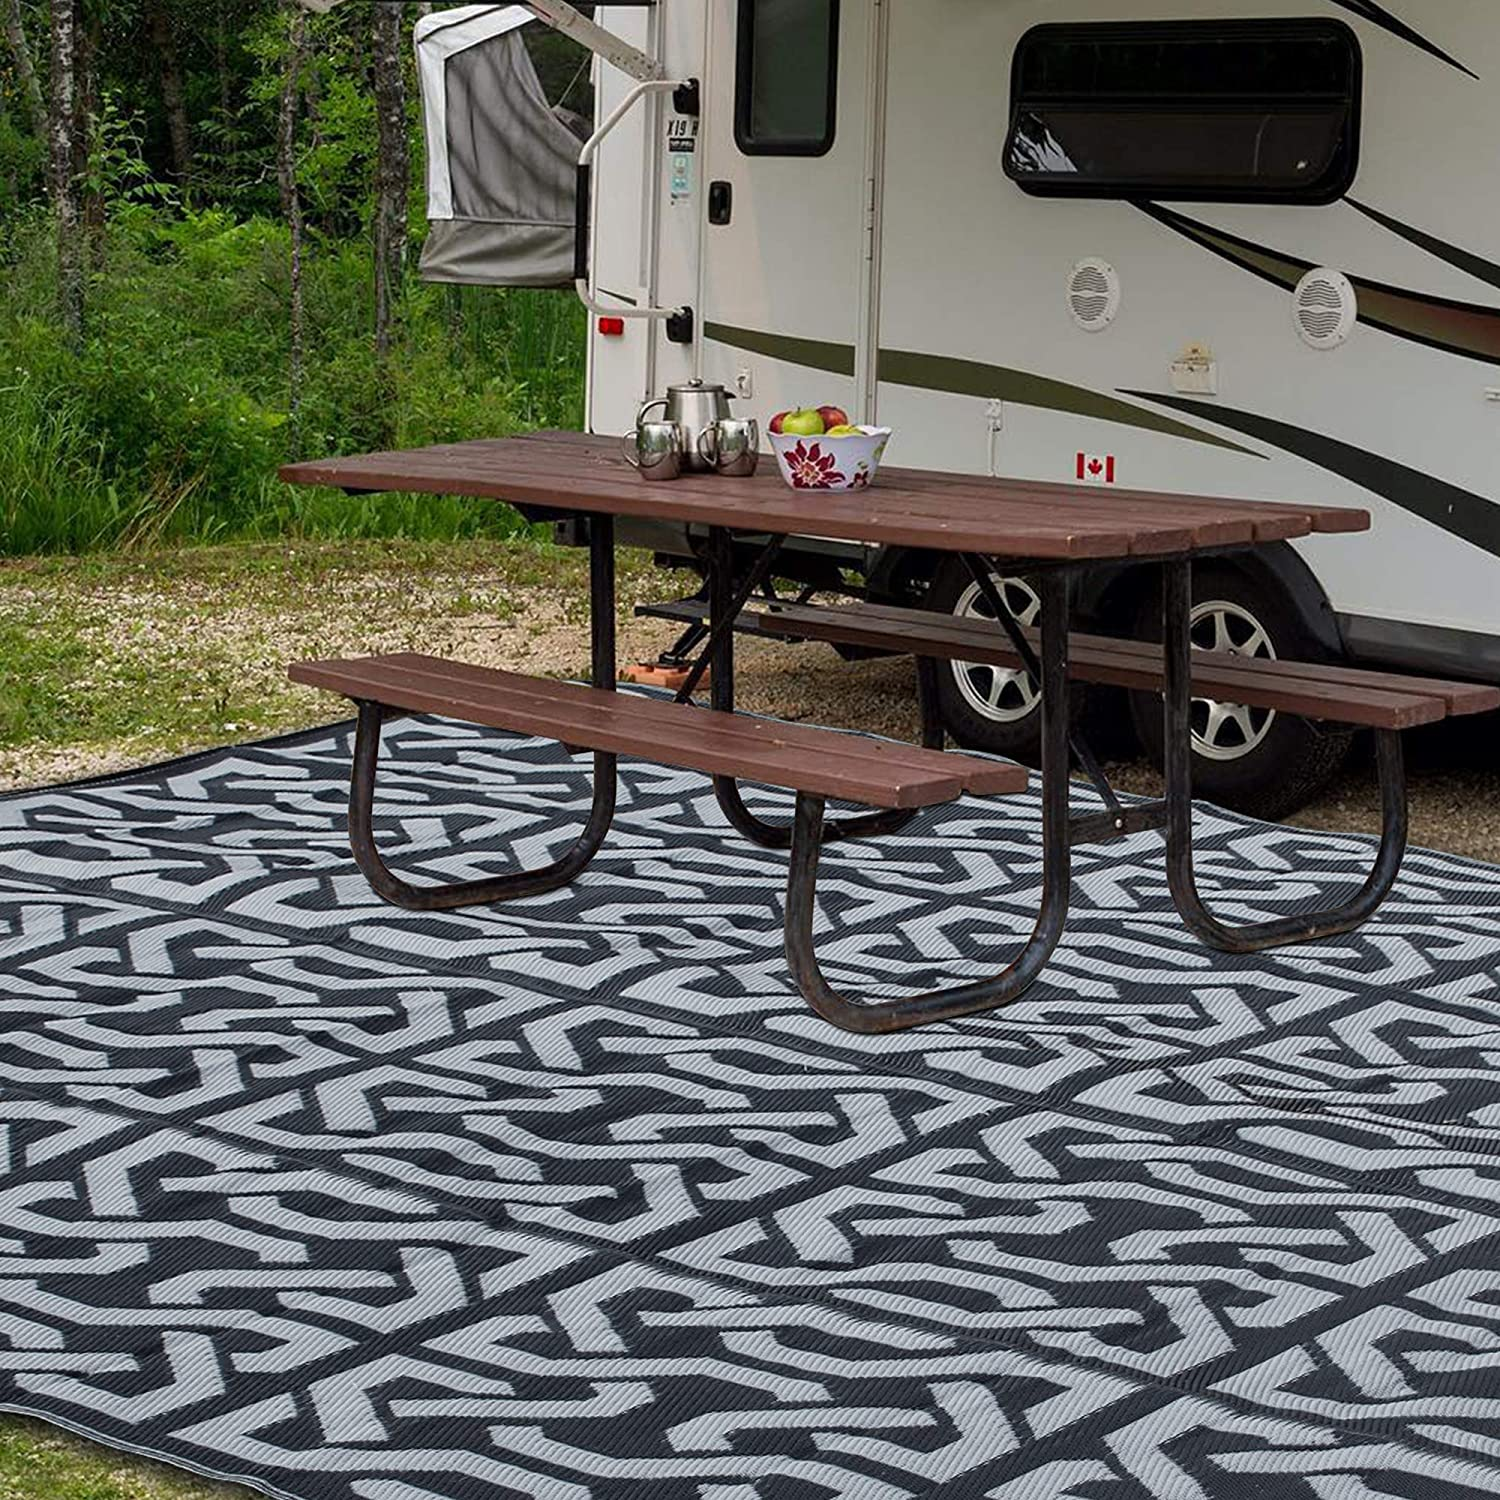 SAND MINE Reversible Mats, Plastic Straw Rug, Fade Resistant Area Rug, Large Floor Mat and Rug for Outdoors, RV, Patio, Backyard, Deck, Picnic, Beach, Trailer, Camping (9' x 12', Black & Grey)